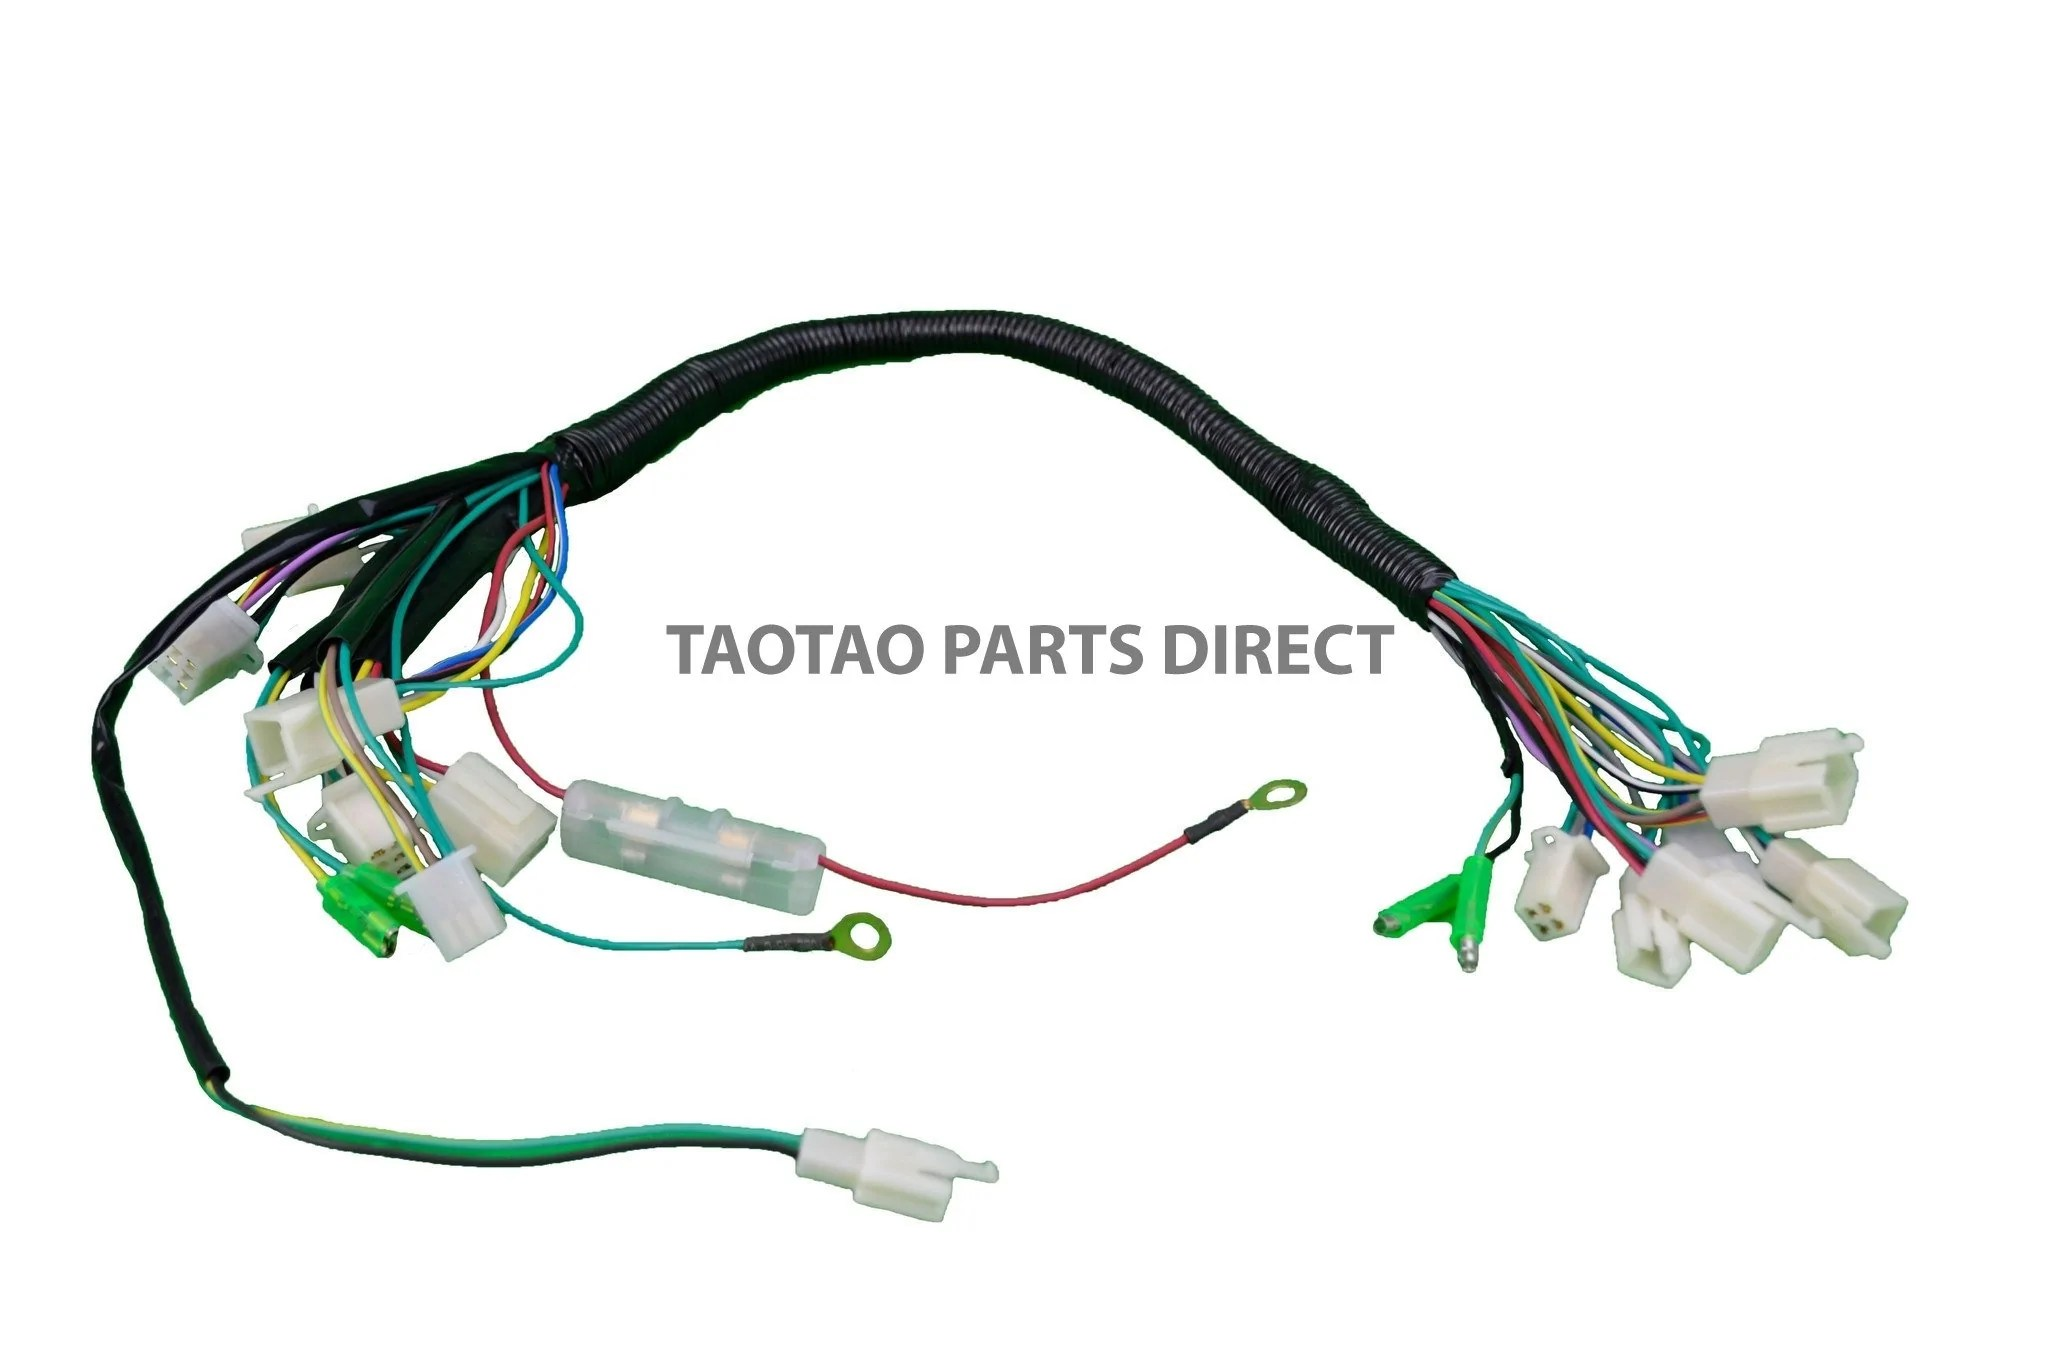 hight resolution of ata110b wire harness 8 taotaopartsdirect com